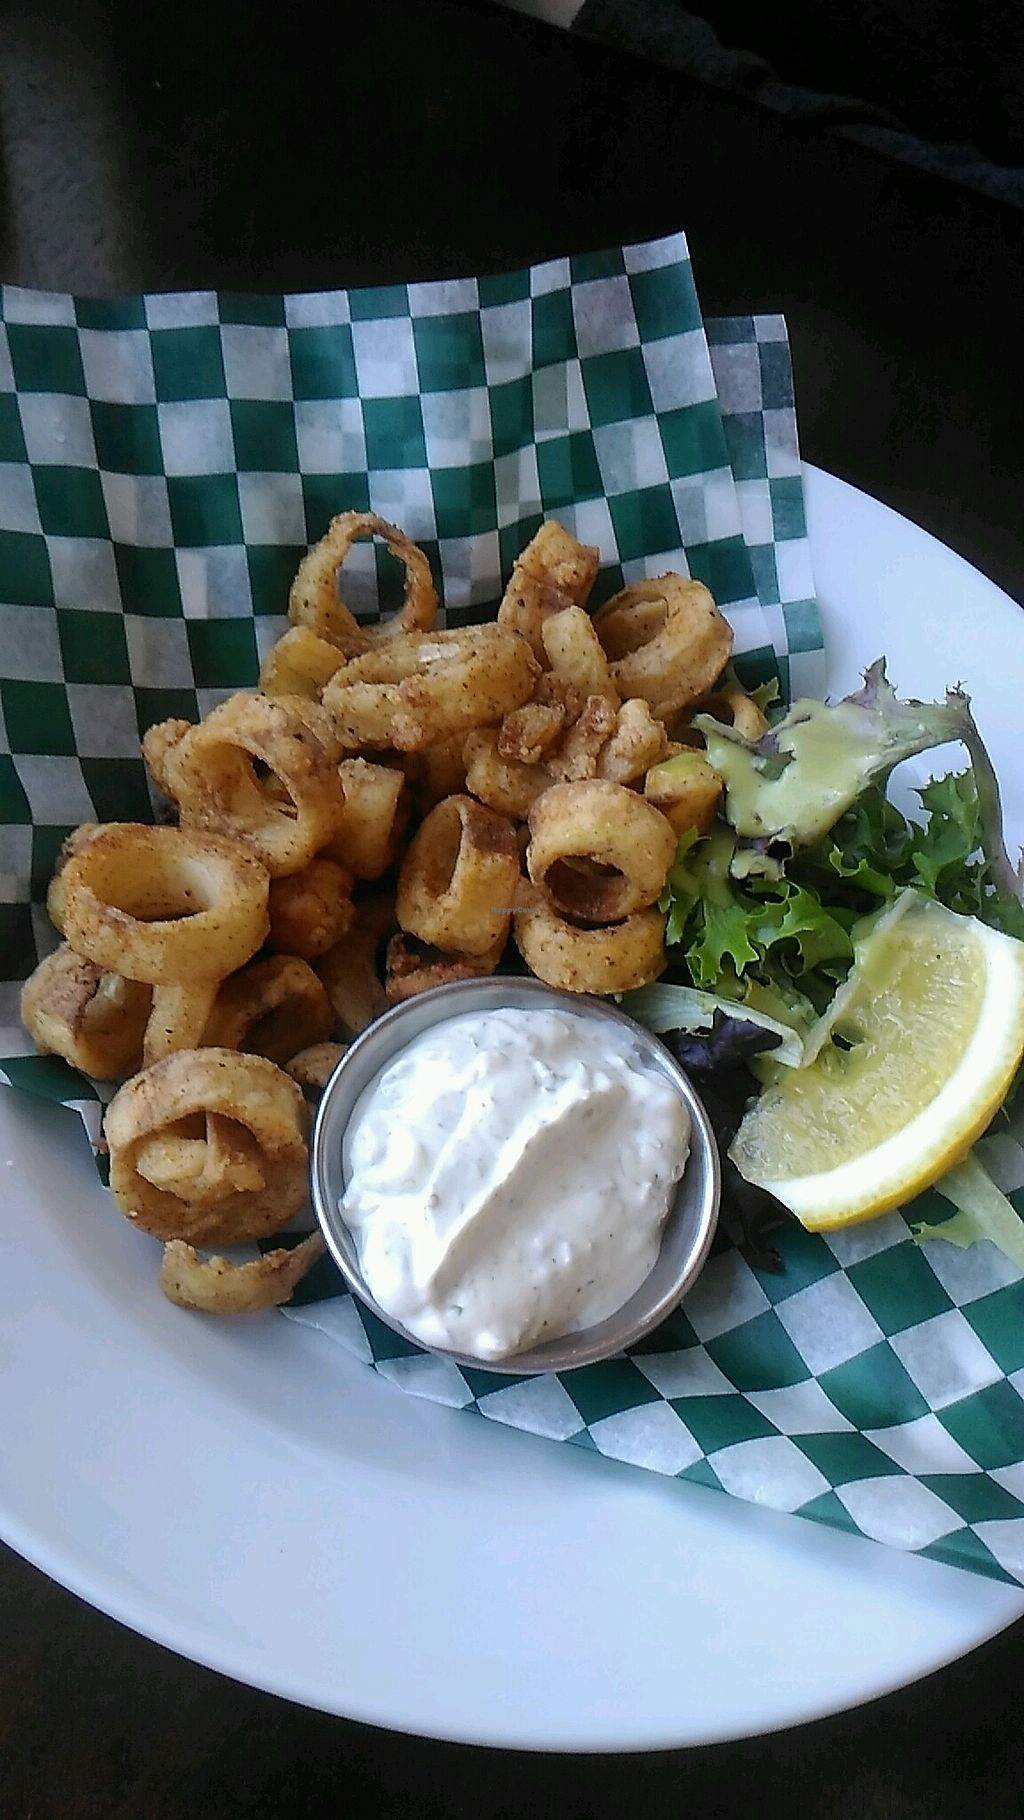 """Photo of Wild Leek  by <a href=""""/members/profile/QuothTheRaven"""">QuothTheRaven</a> <br/>vegan calamari  <br/> April 12, 2018  - <a href='/contact/abuse/image/38899/384220'>Report</a>"""